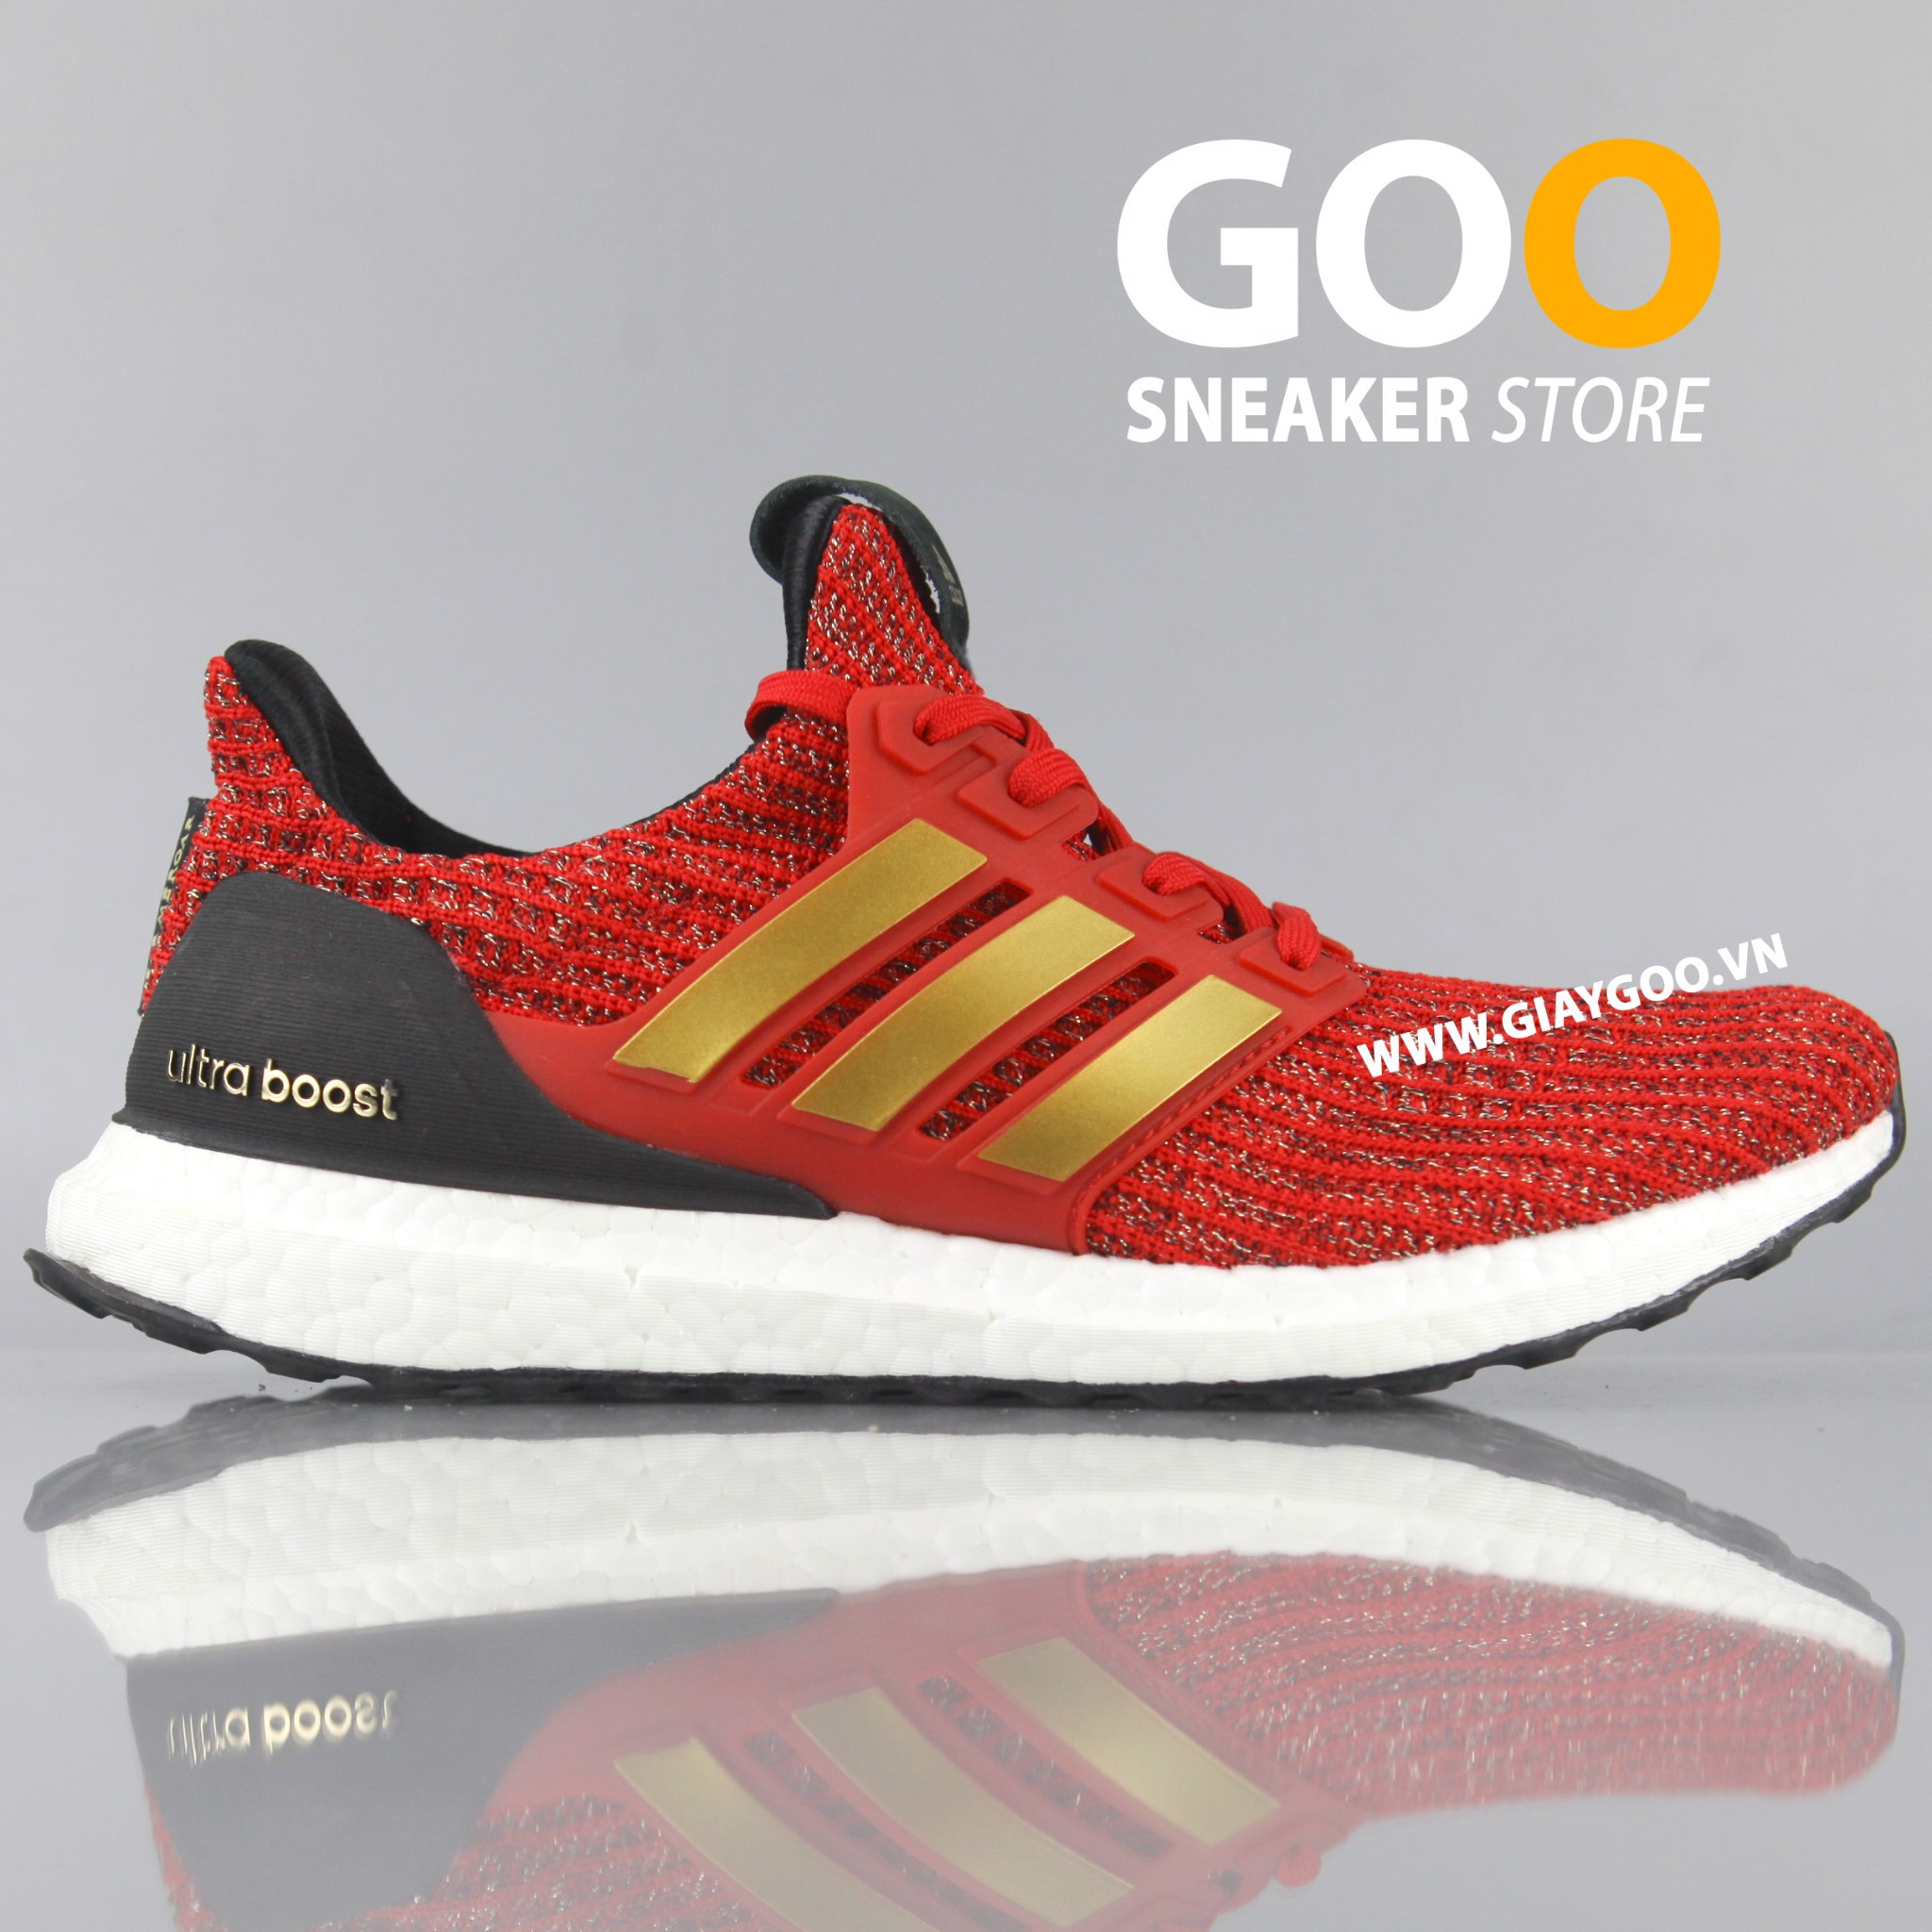 Giày Ultra Boost 4.0 Game Of Thrones House Lanister Rep 1:1